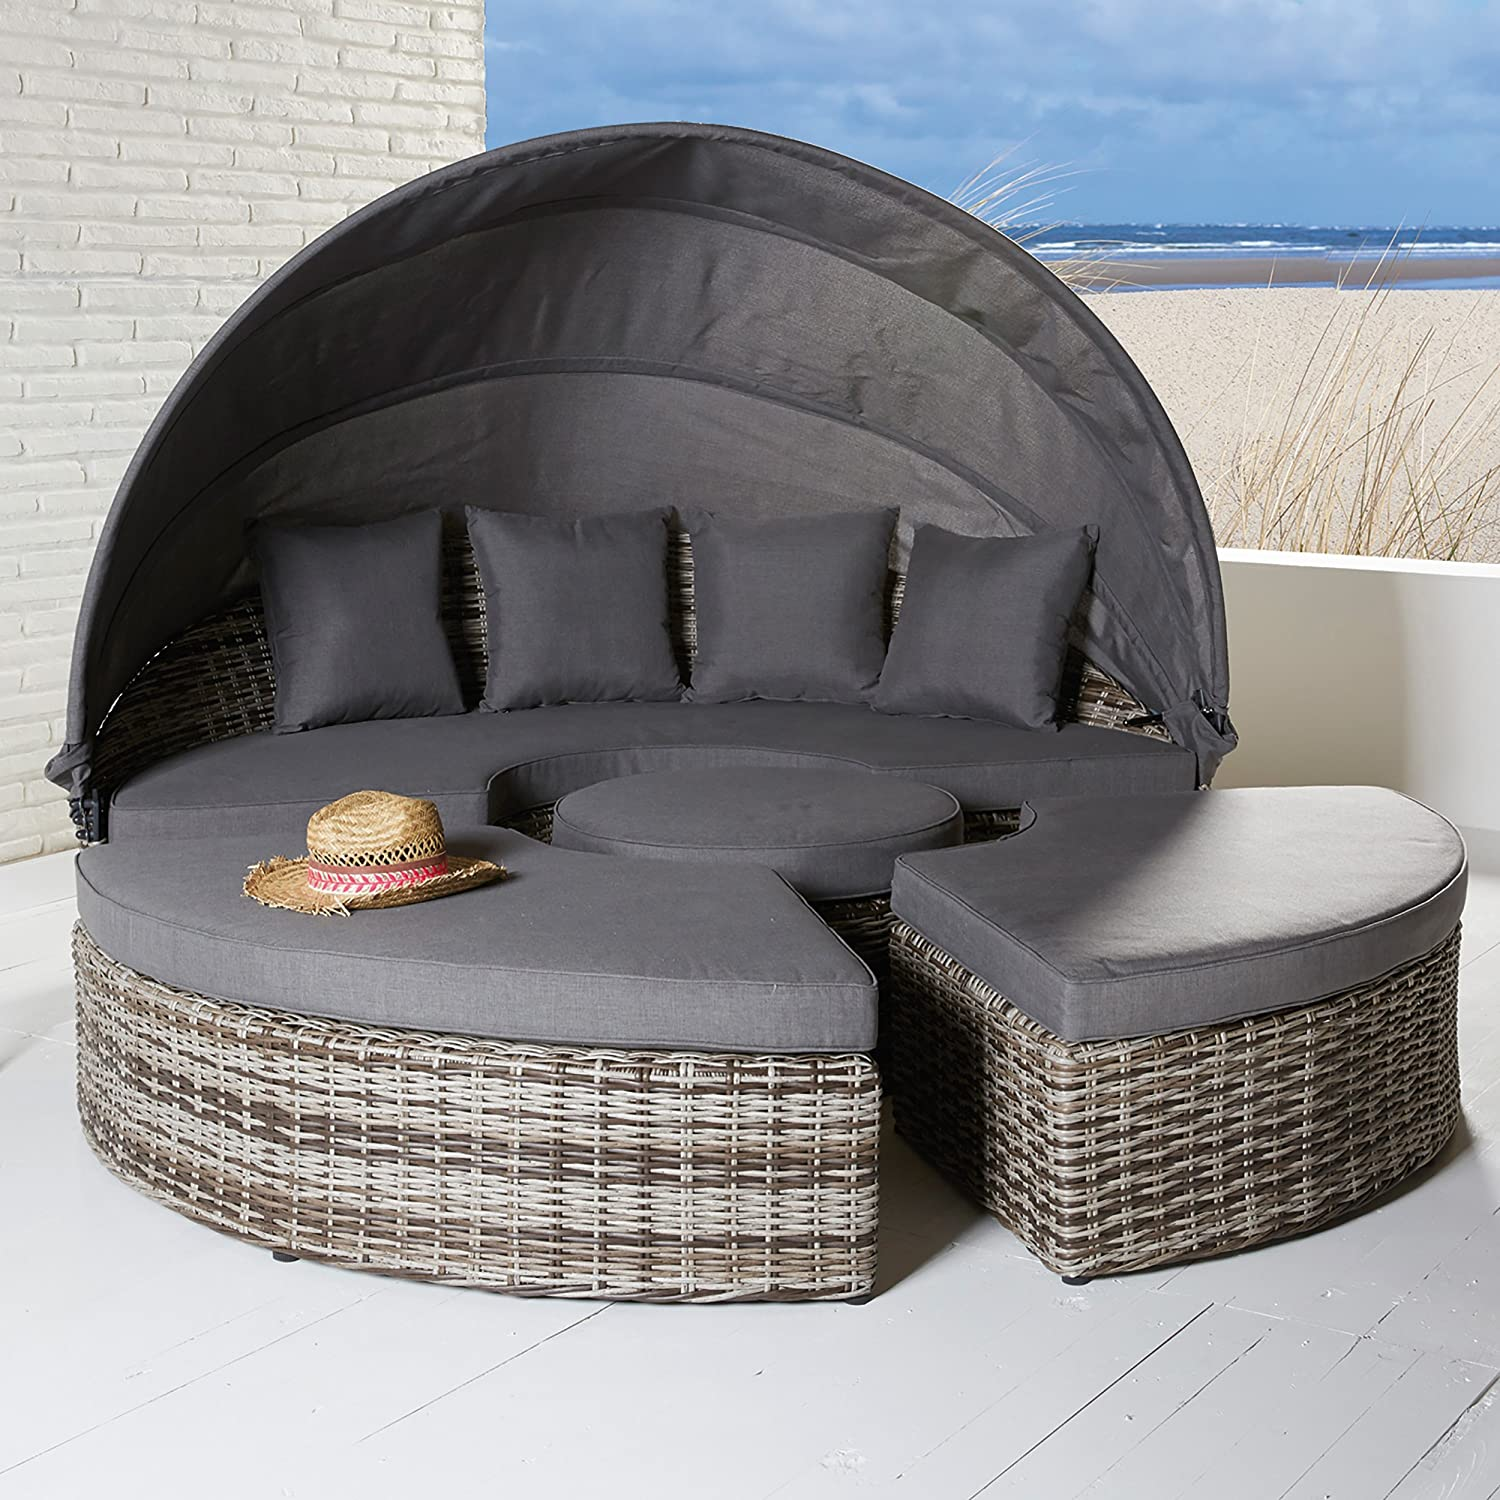 strandkorb muschel rattan rugbyclubeemland. Black Bedroom Furniture Sets. Home Design Ideas